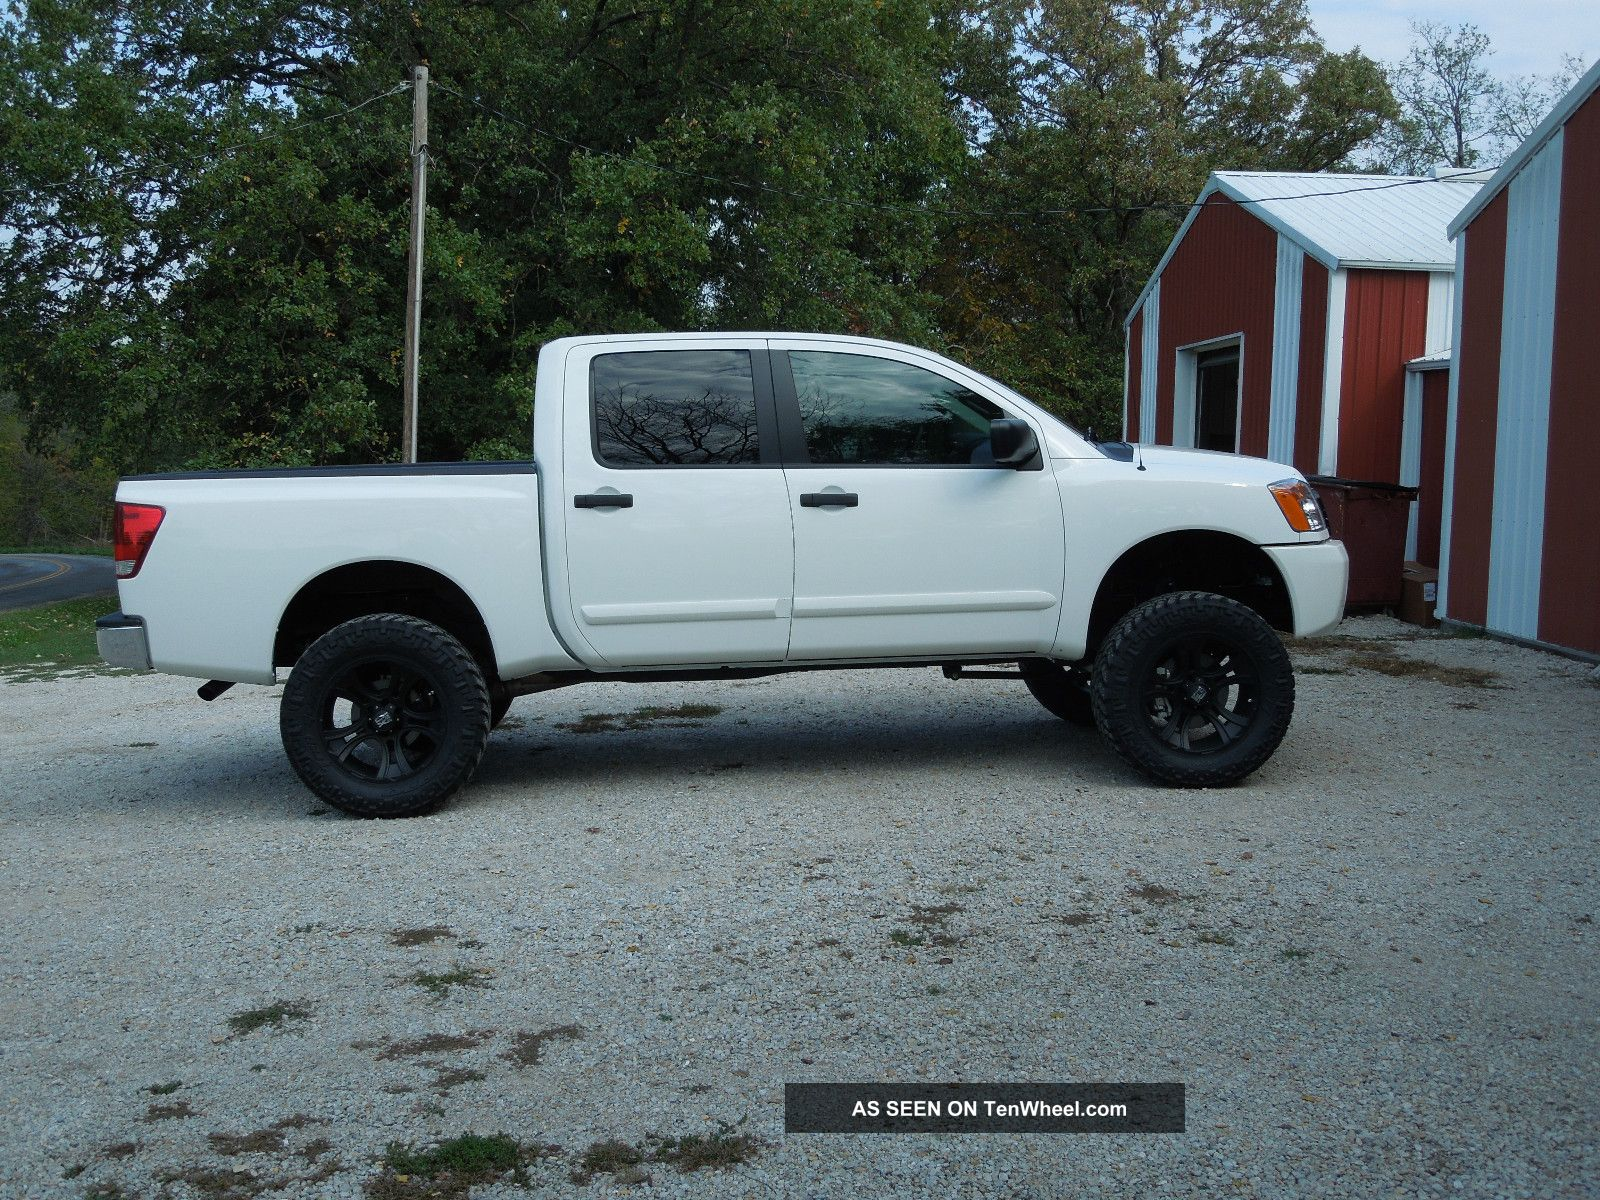 Nissan Titan Crewcab Photo Gallery